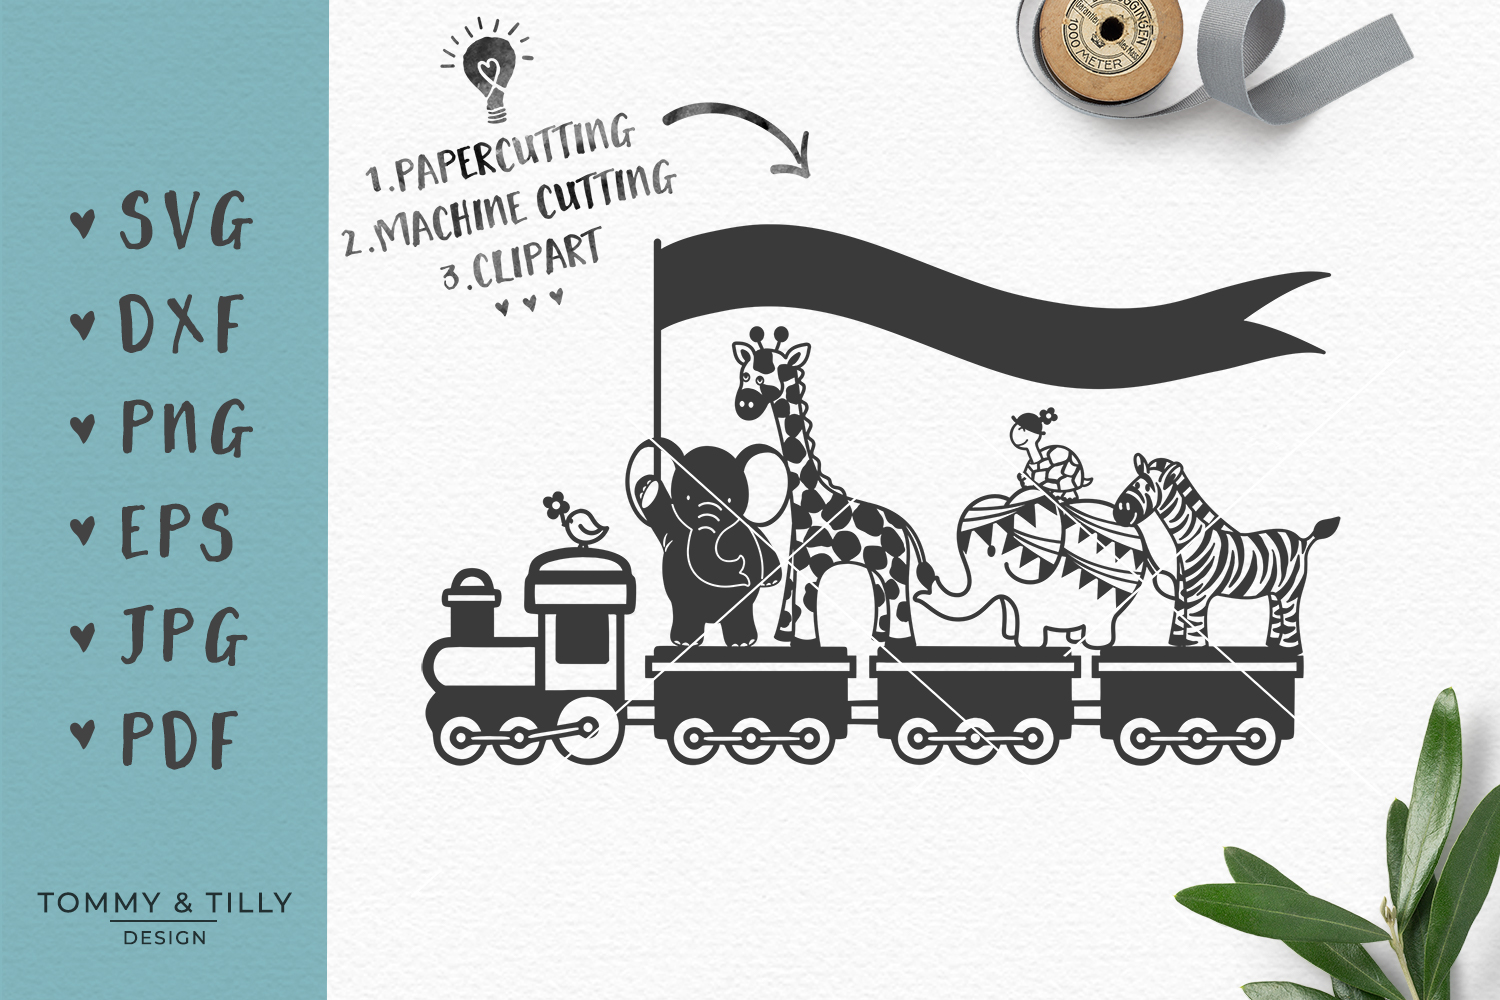 Animal Train - SVG DXF PNG EPS JPG PDF Cutting File example image 1